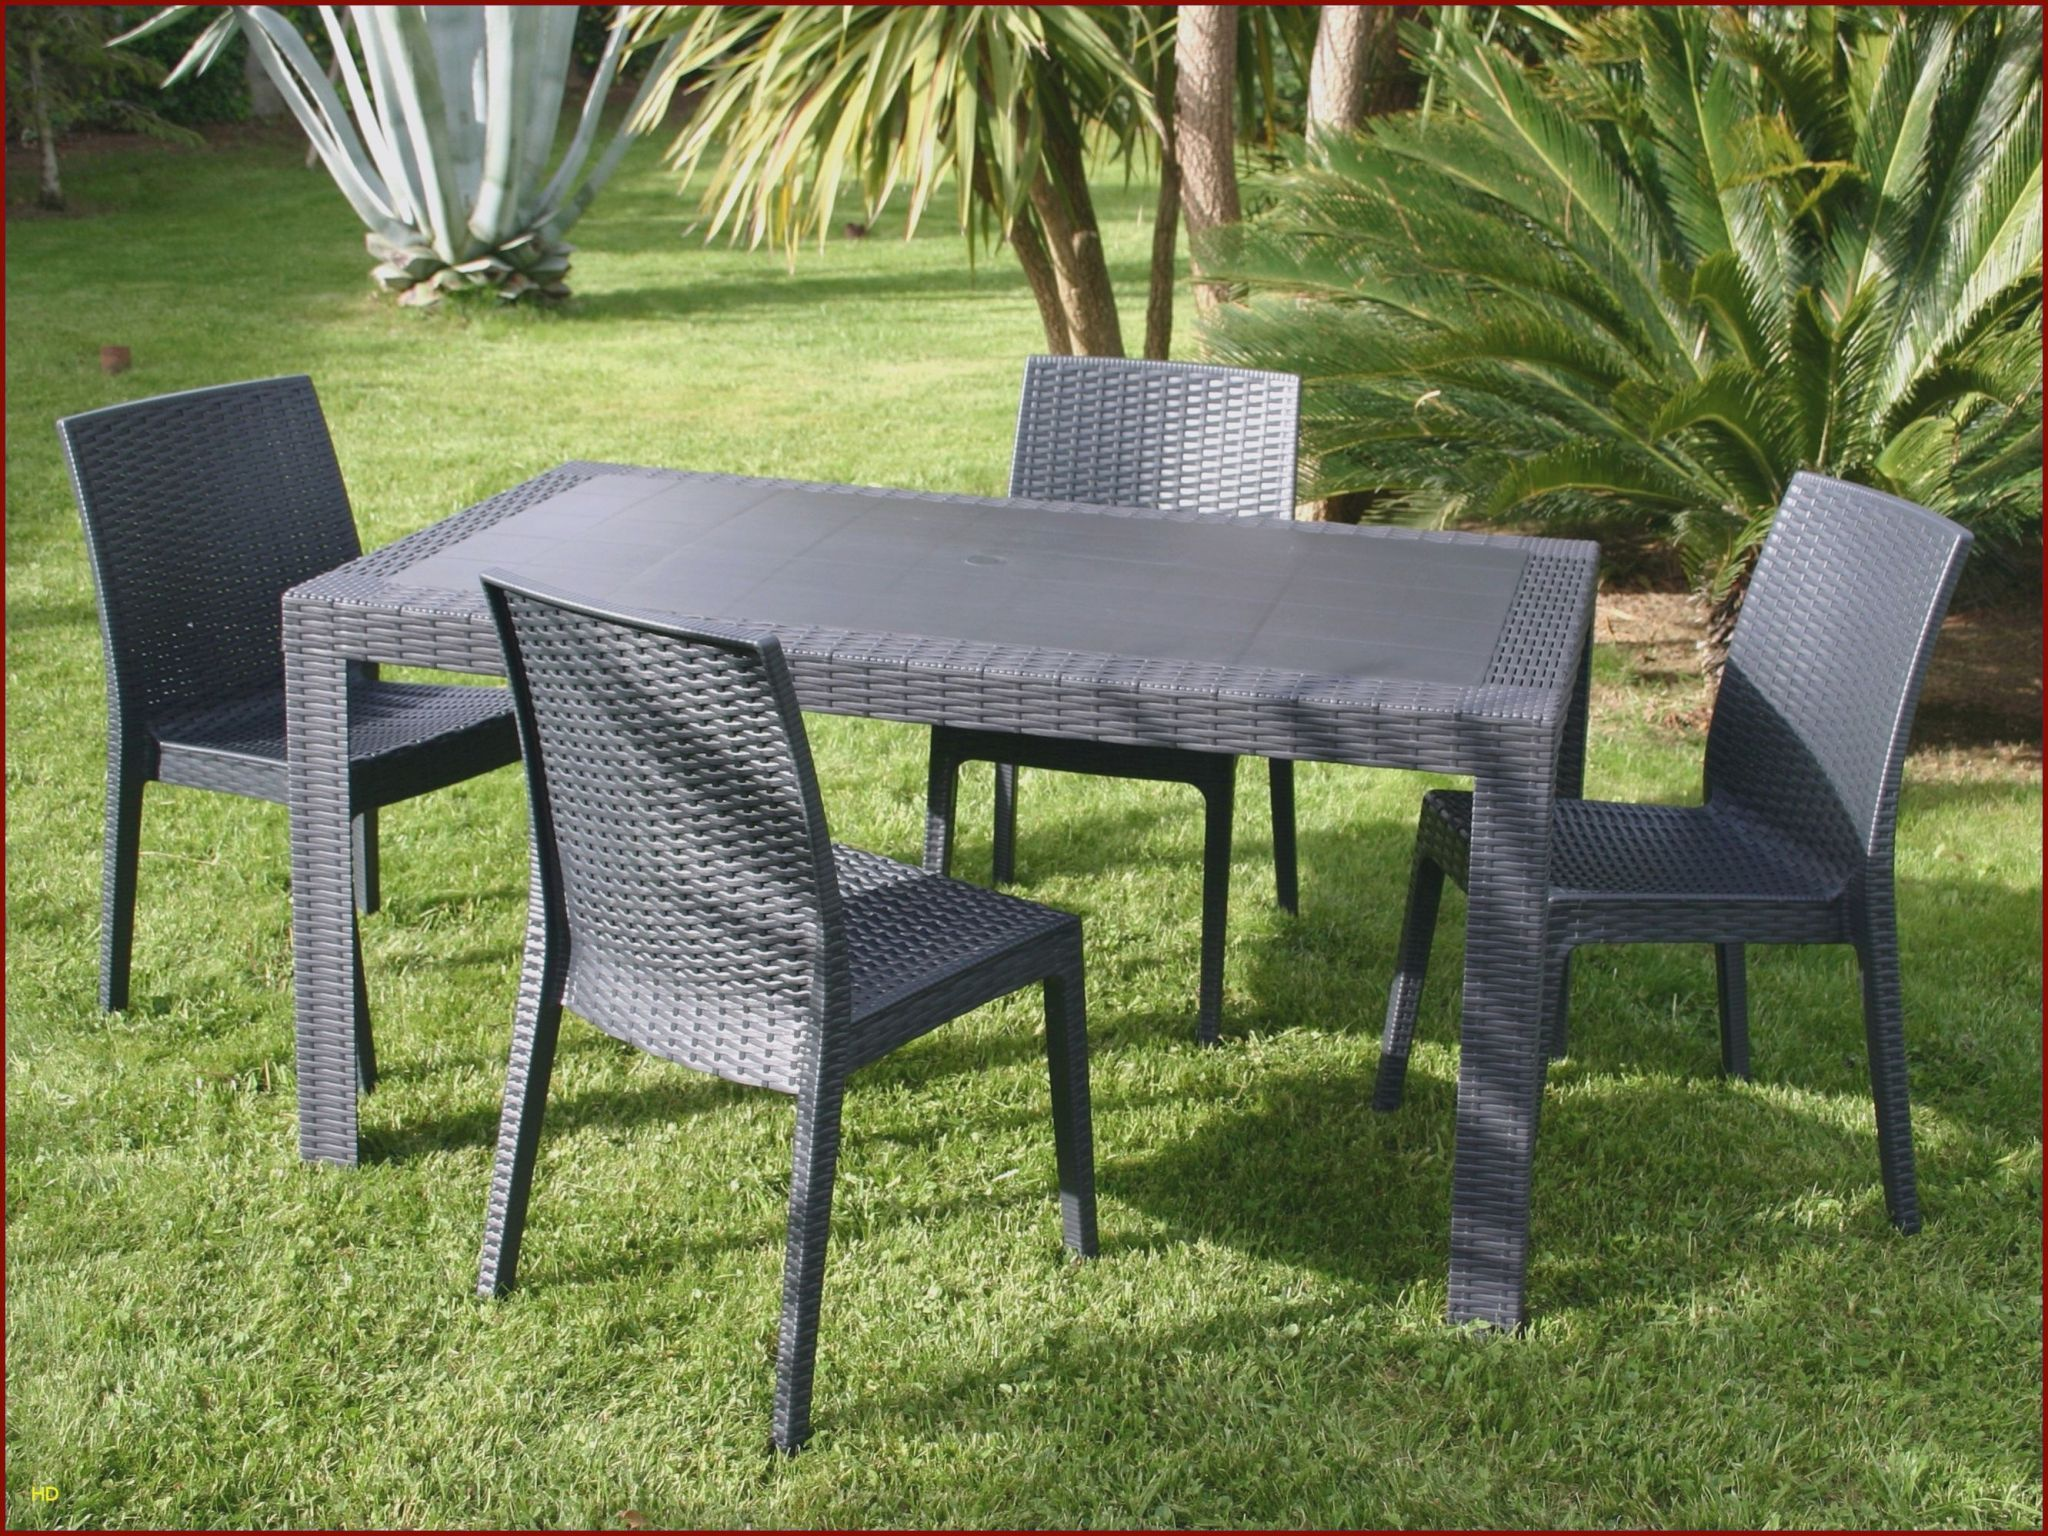 Salon De Jardin Table Ronde Beau Chaises Luxe Chaise Ice 0d Table Jardin Resine Lovely Of 27 Génial Salon De Jardin Table Ronde